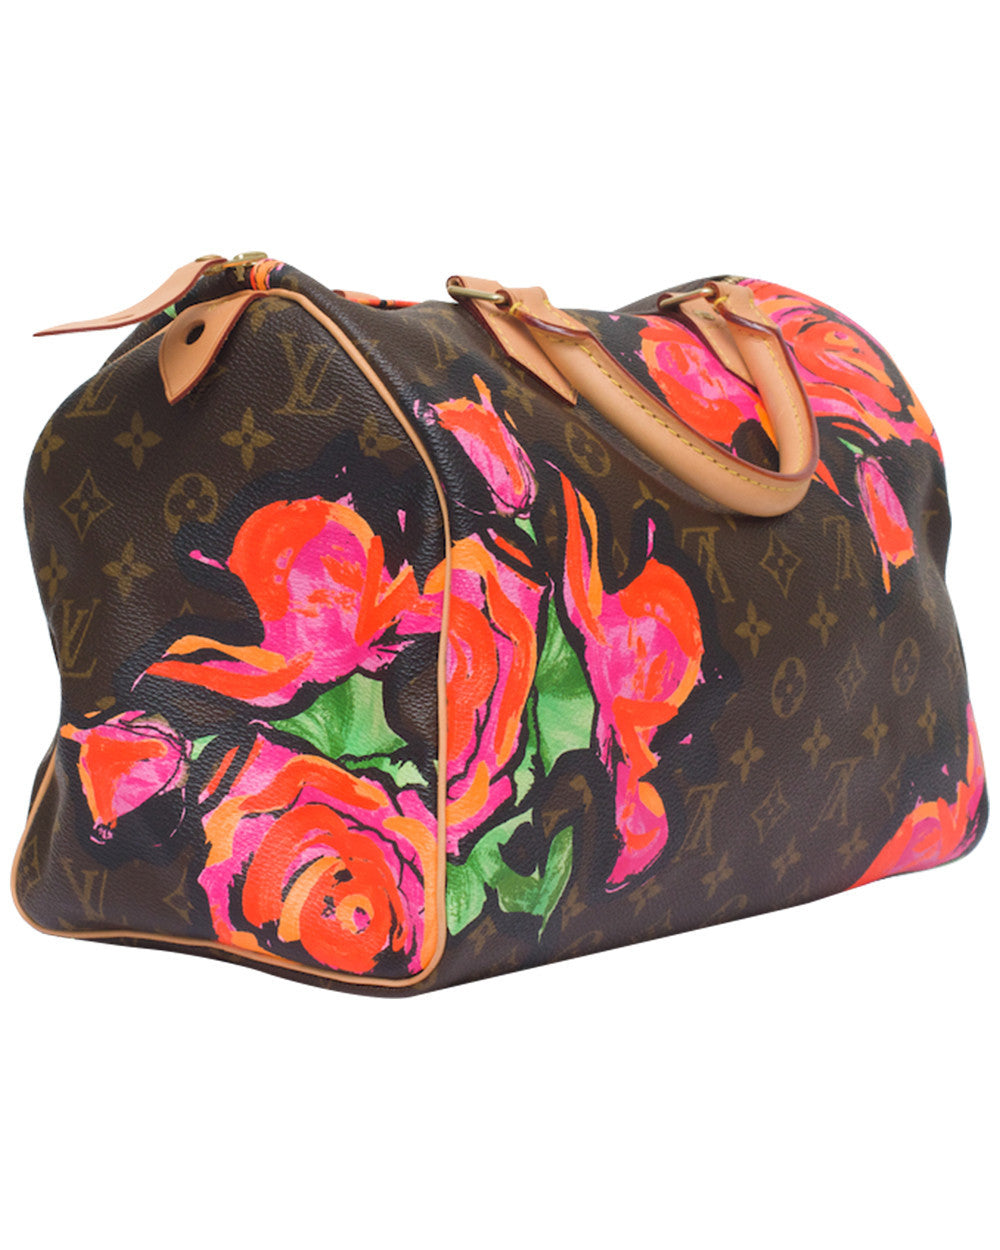 Louis Vuitton Roses Speedy 30